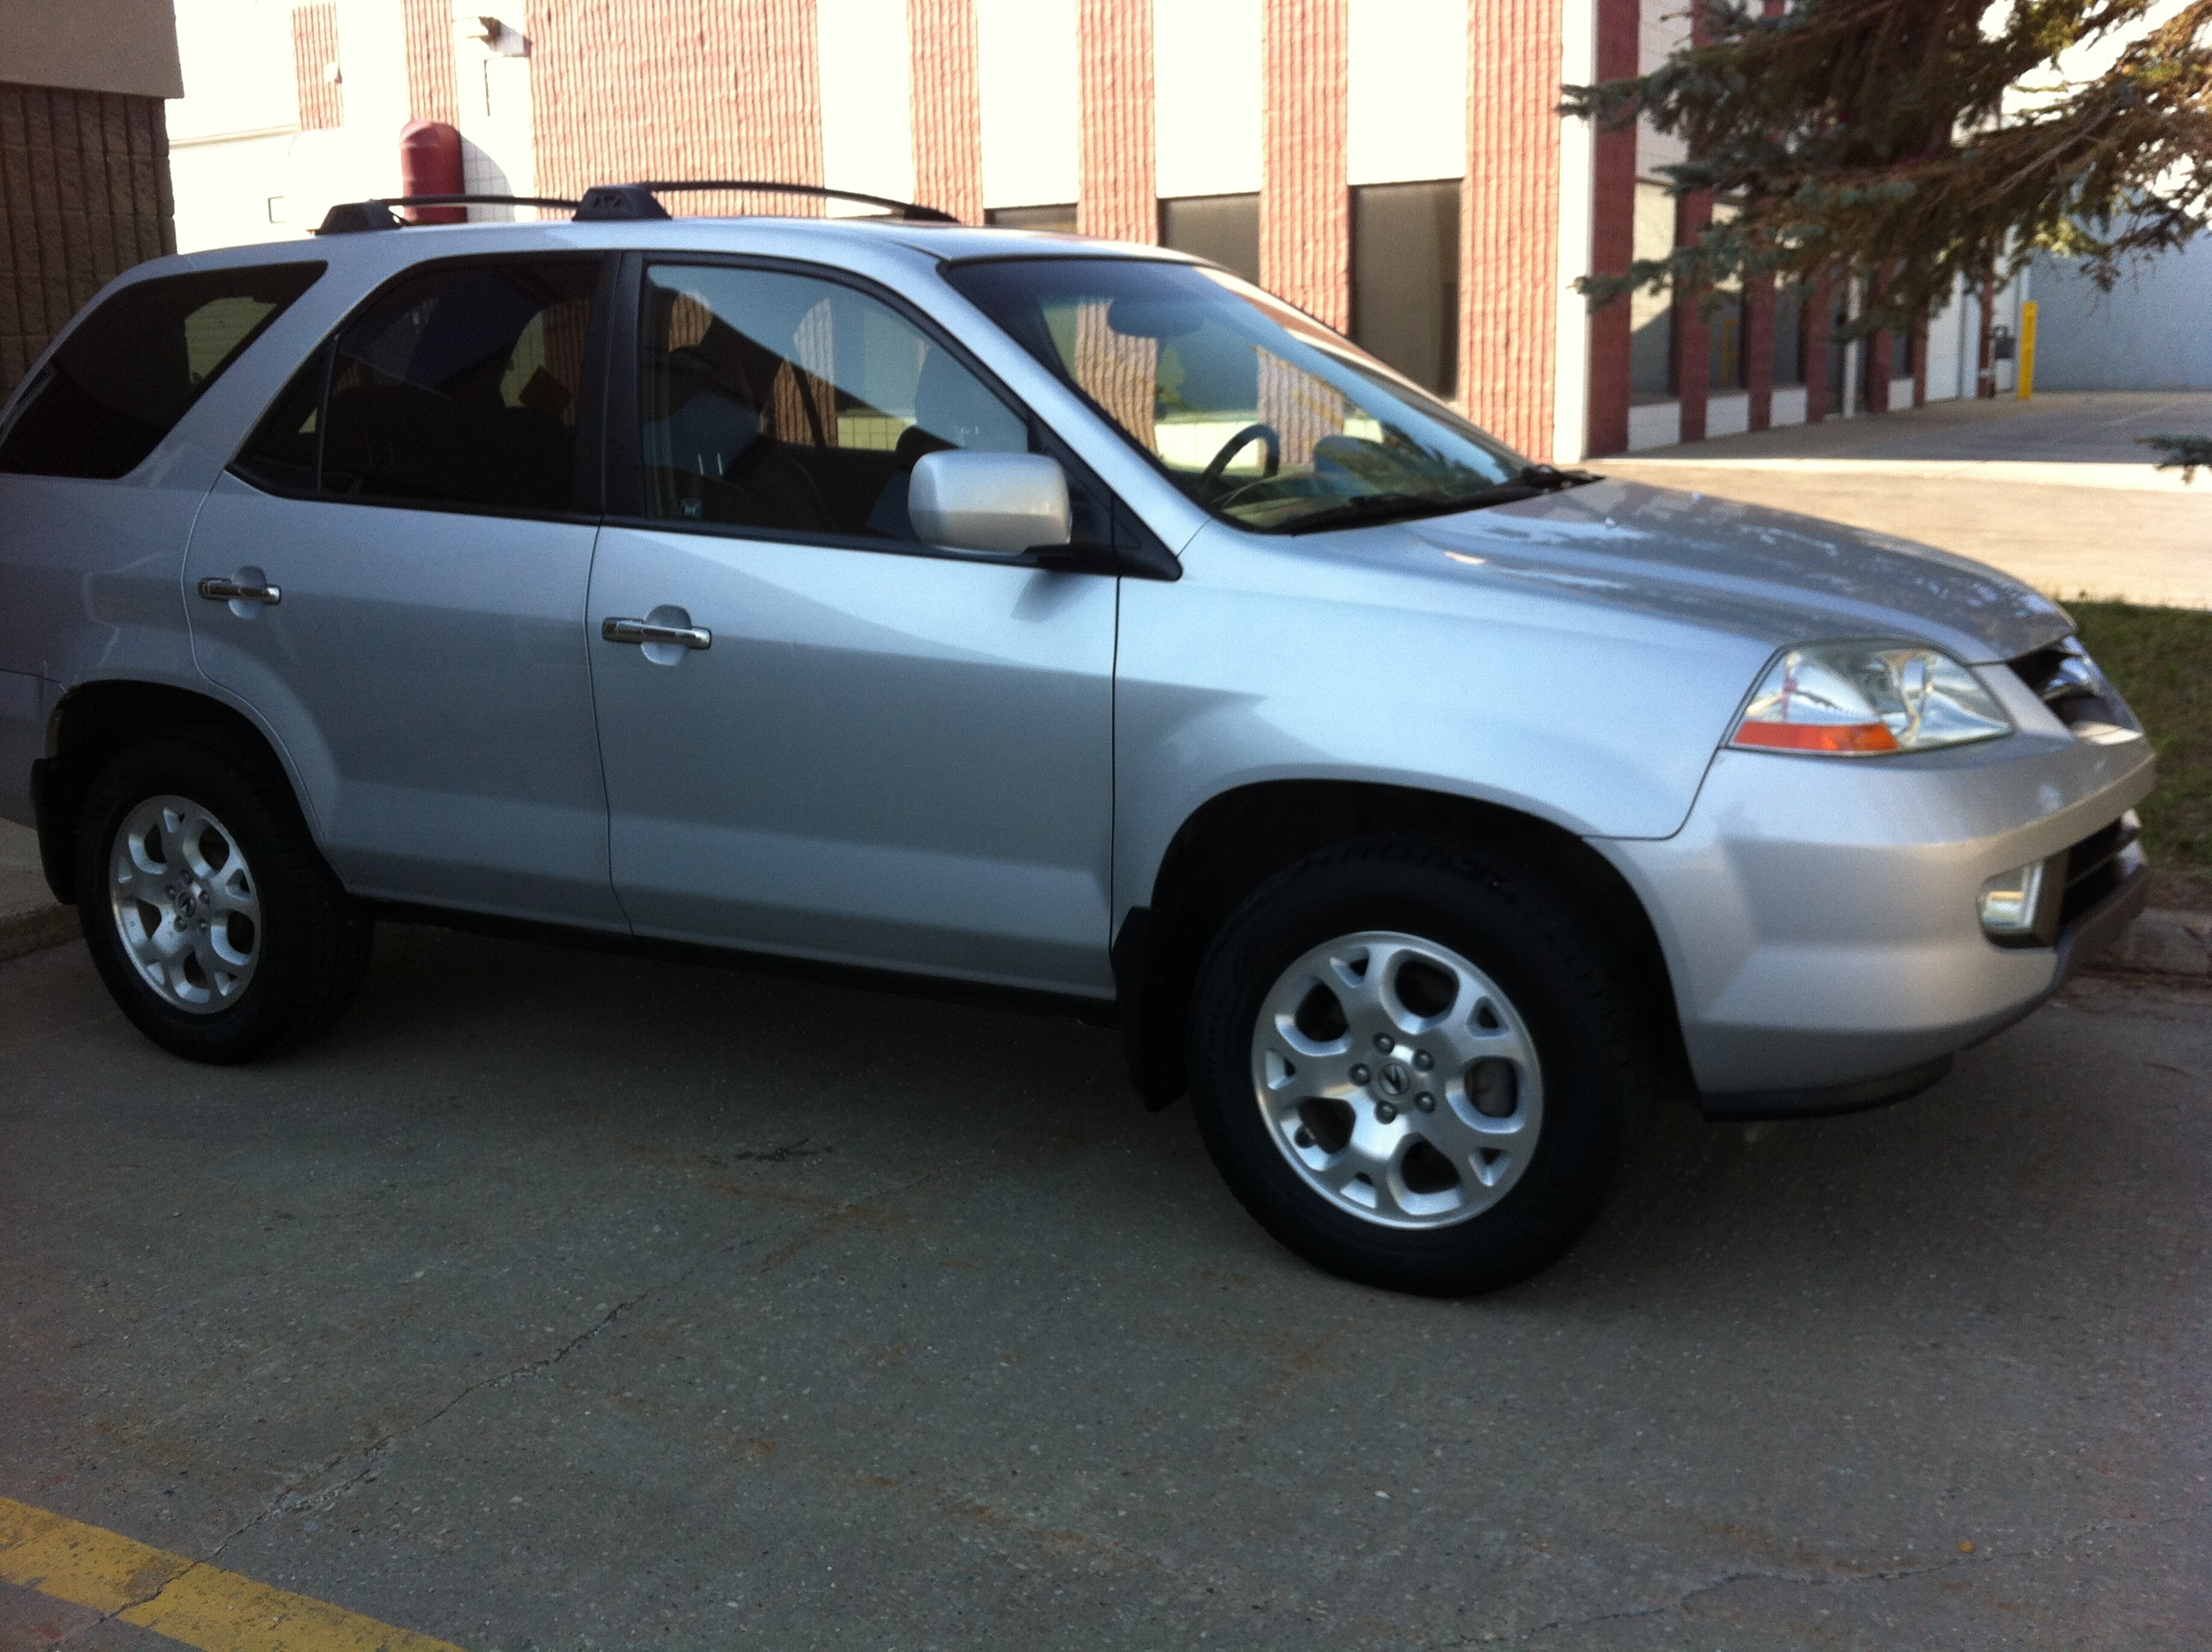 mdx touring best my can the is help for integrity what tire or acura scanlon